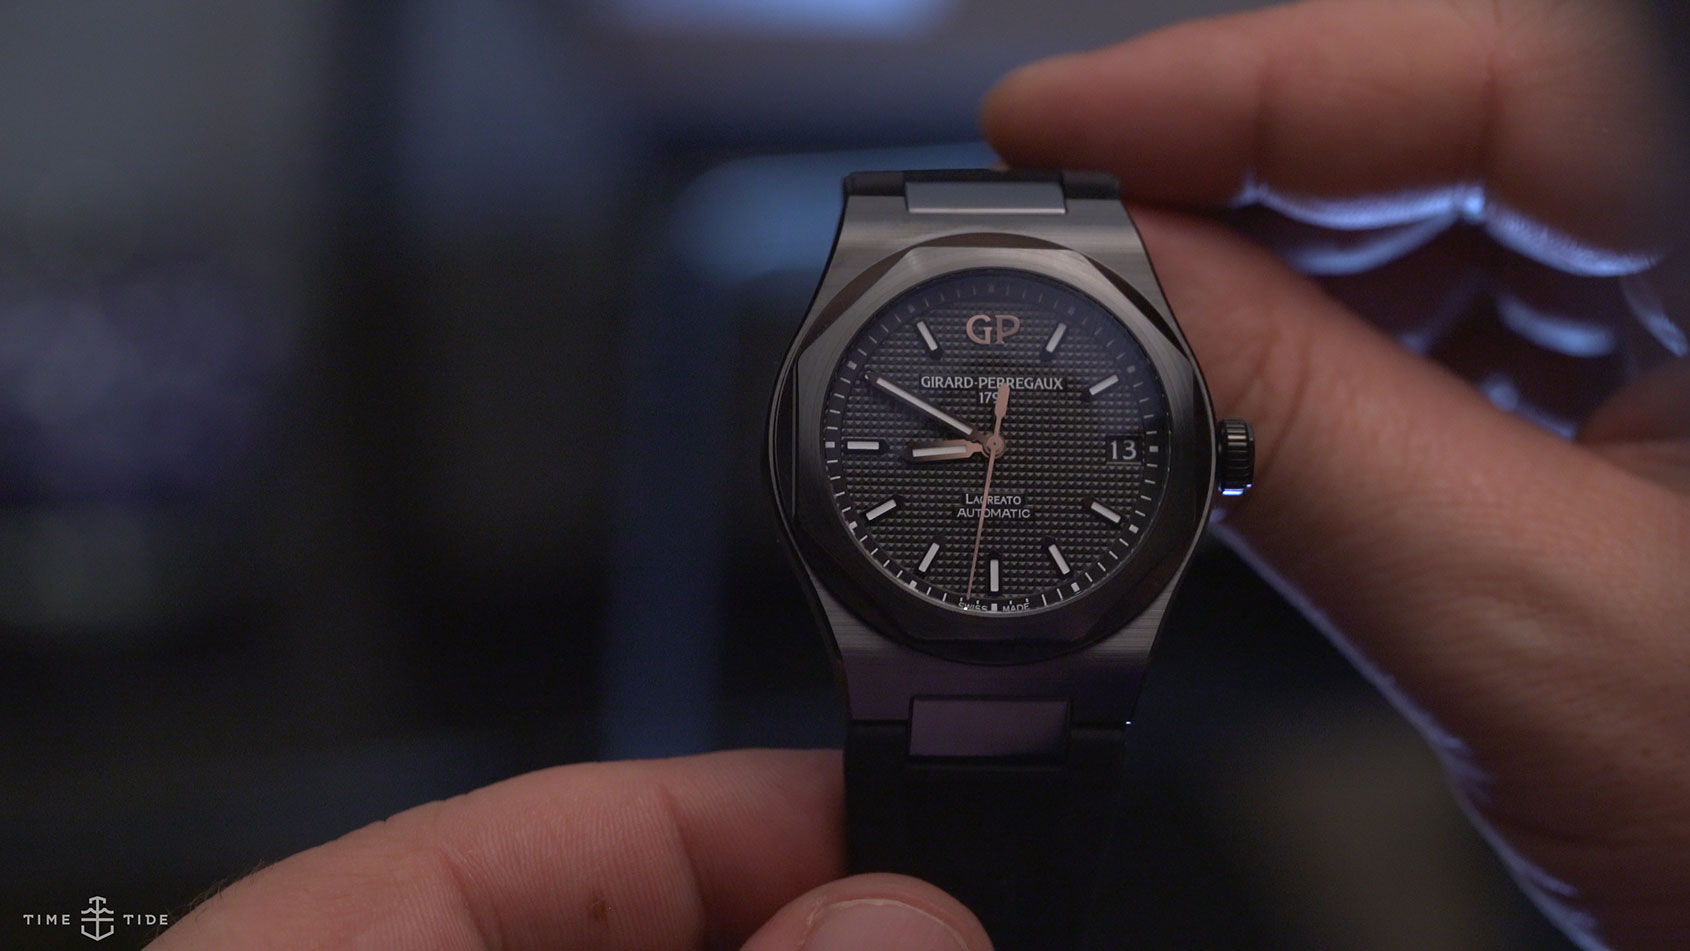 EDITOR'S PICK: This Laureato is the reason why you should always bet on black